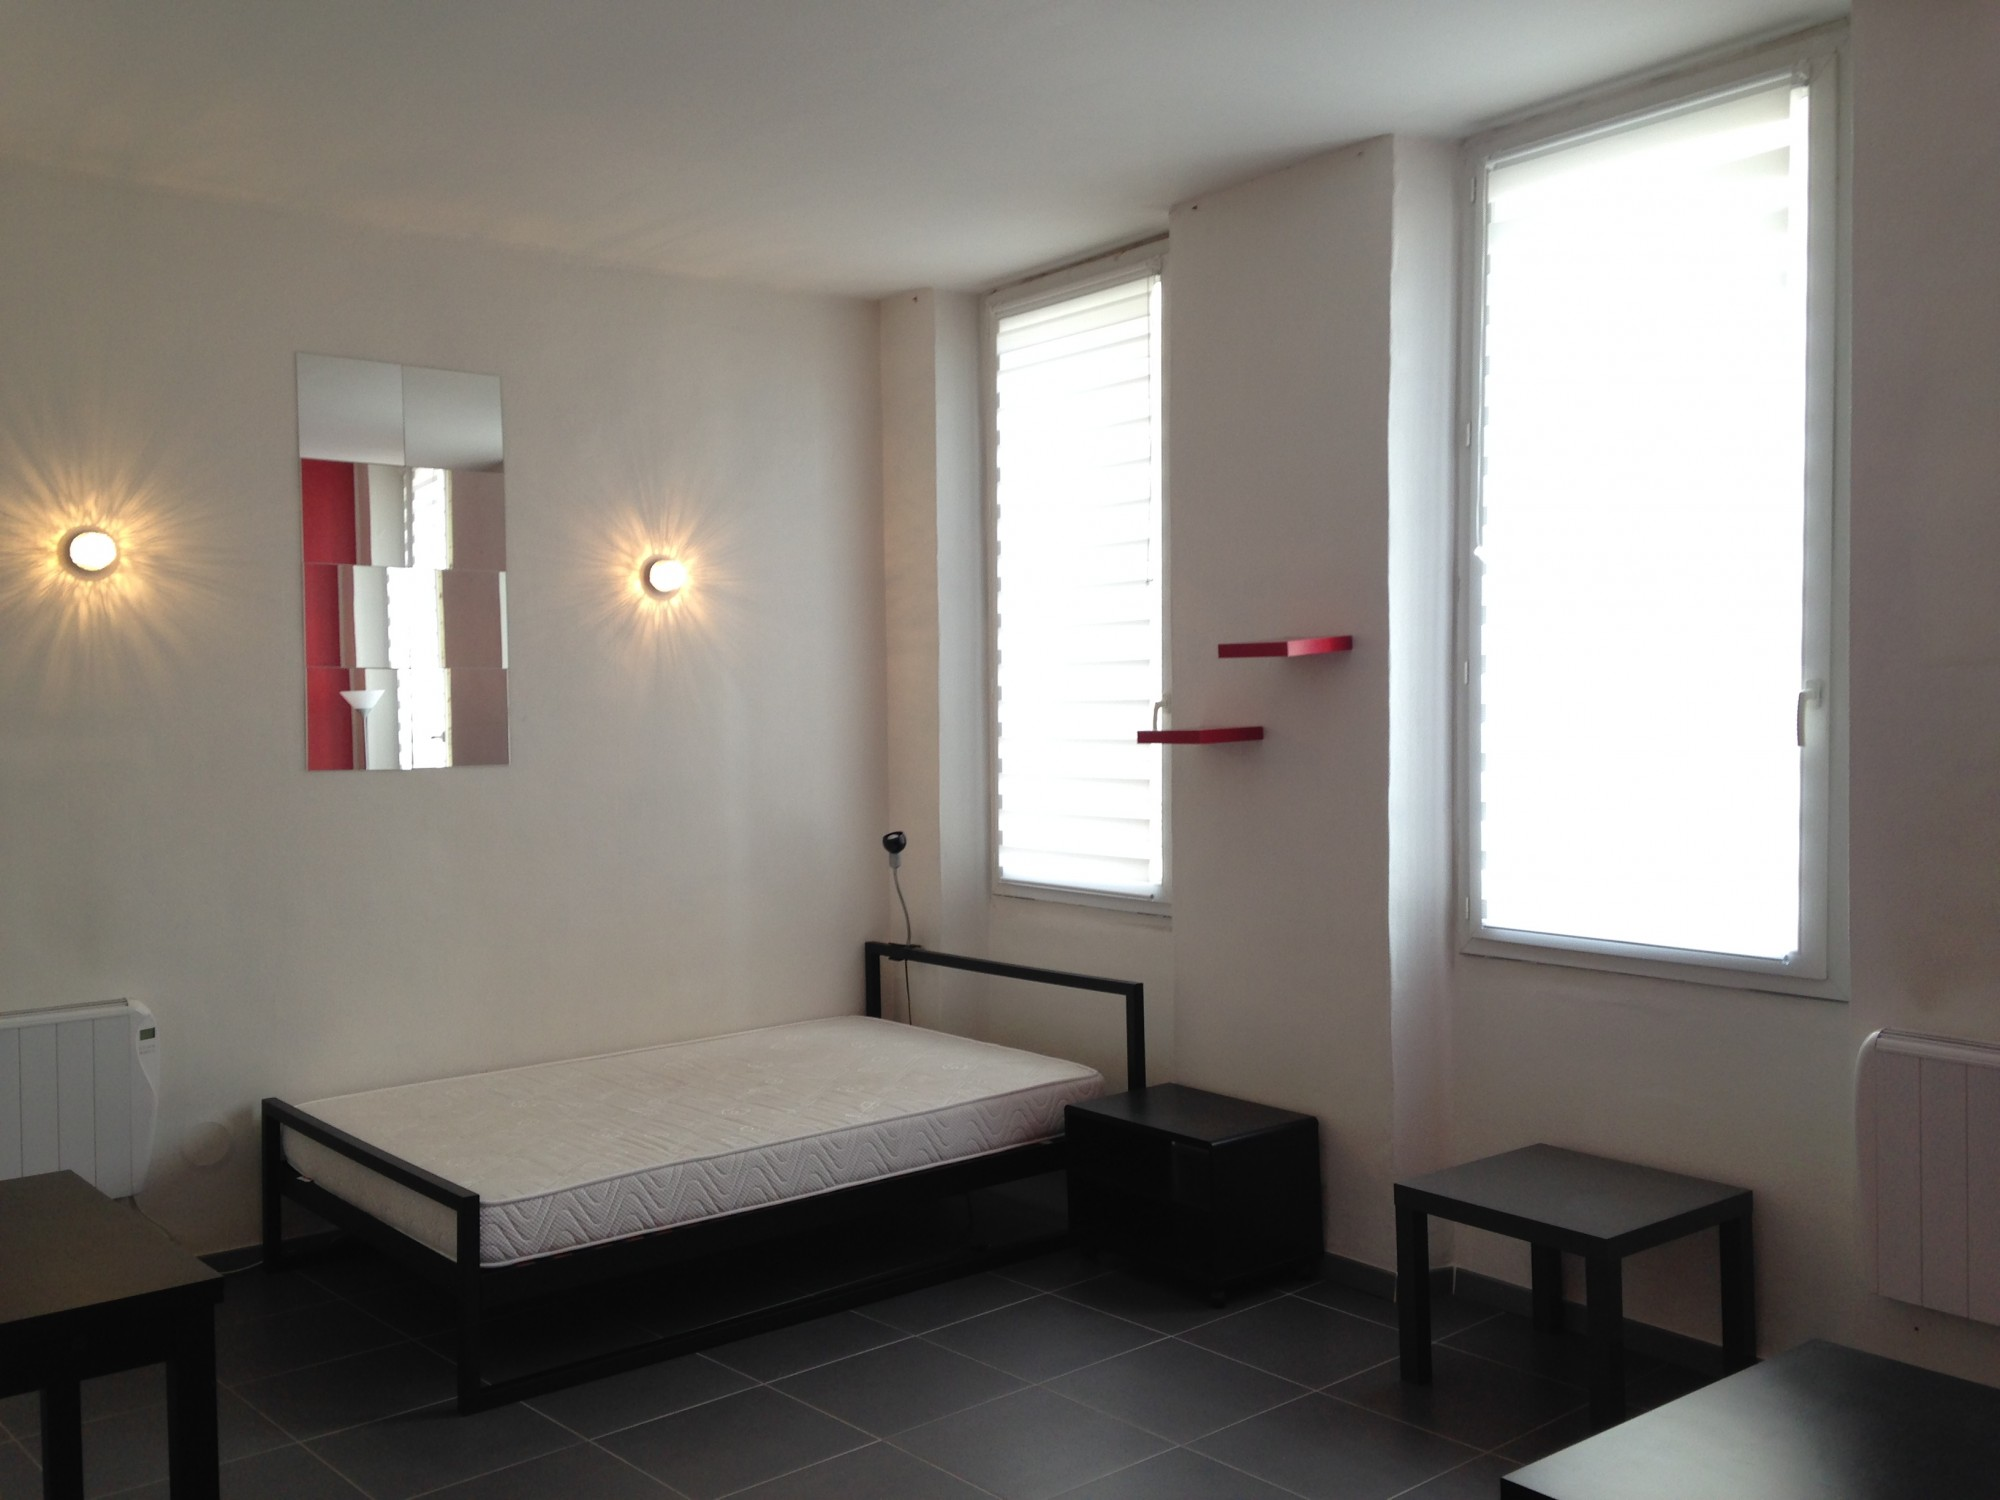 Locations Appartement Meubl T1 F1 13006 Rue Auguste